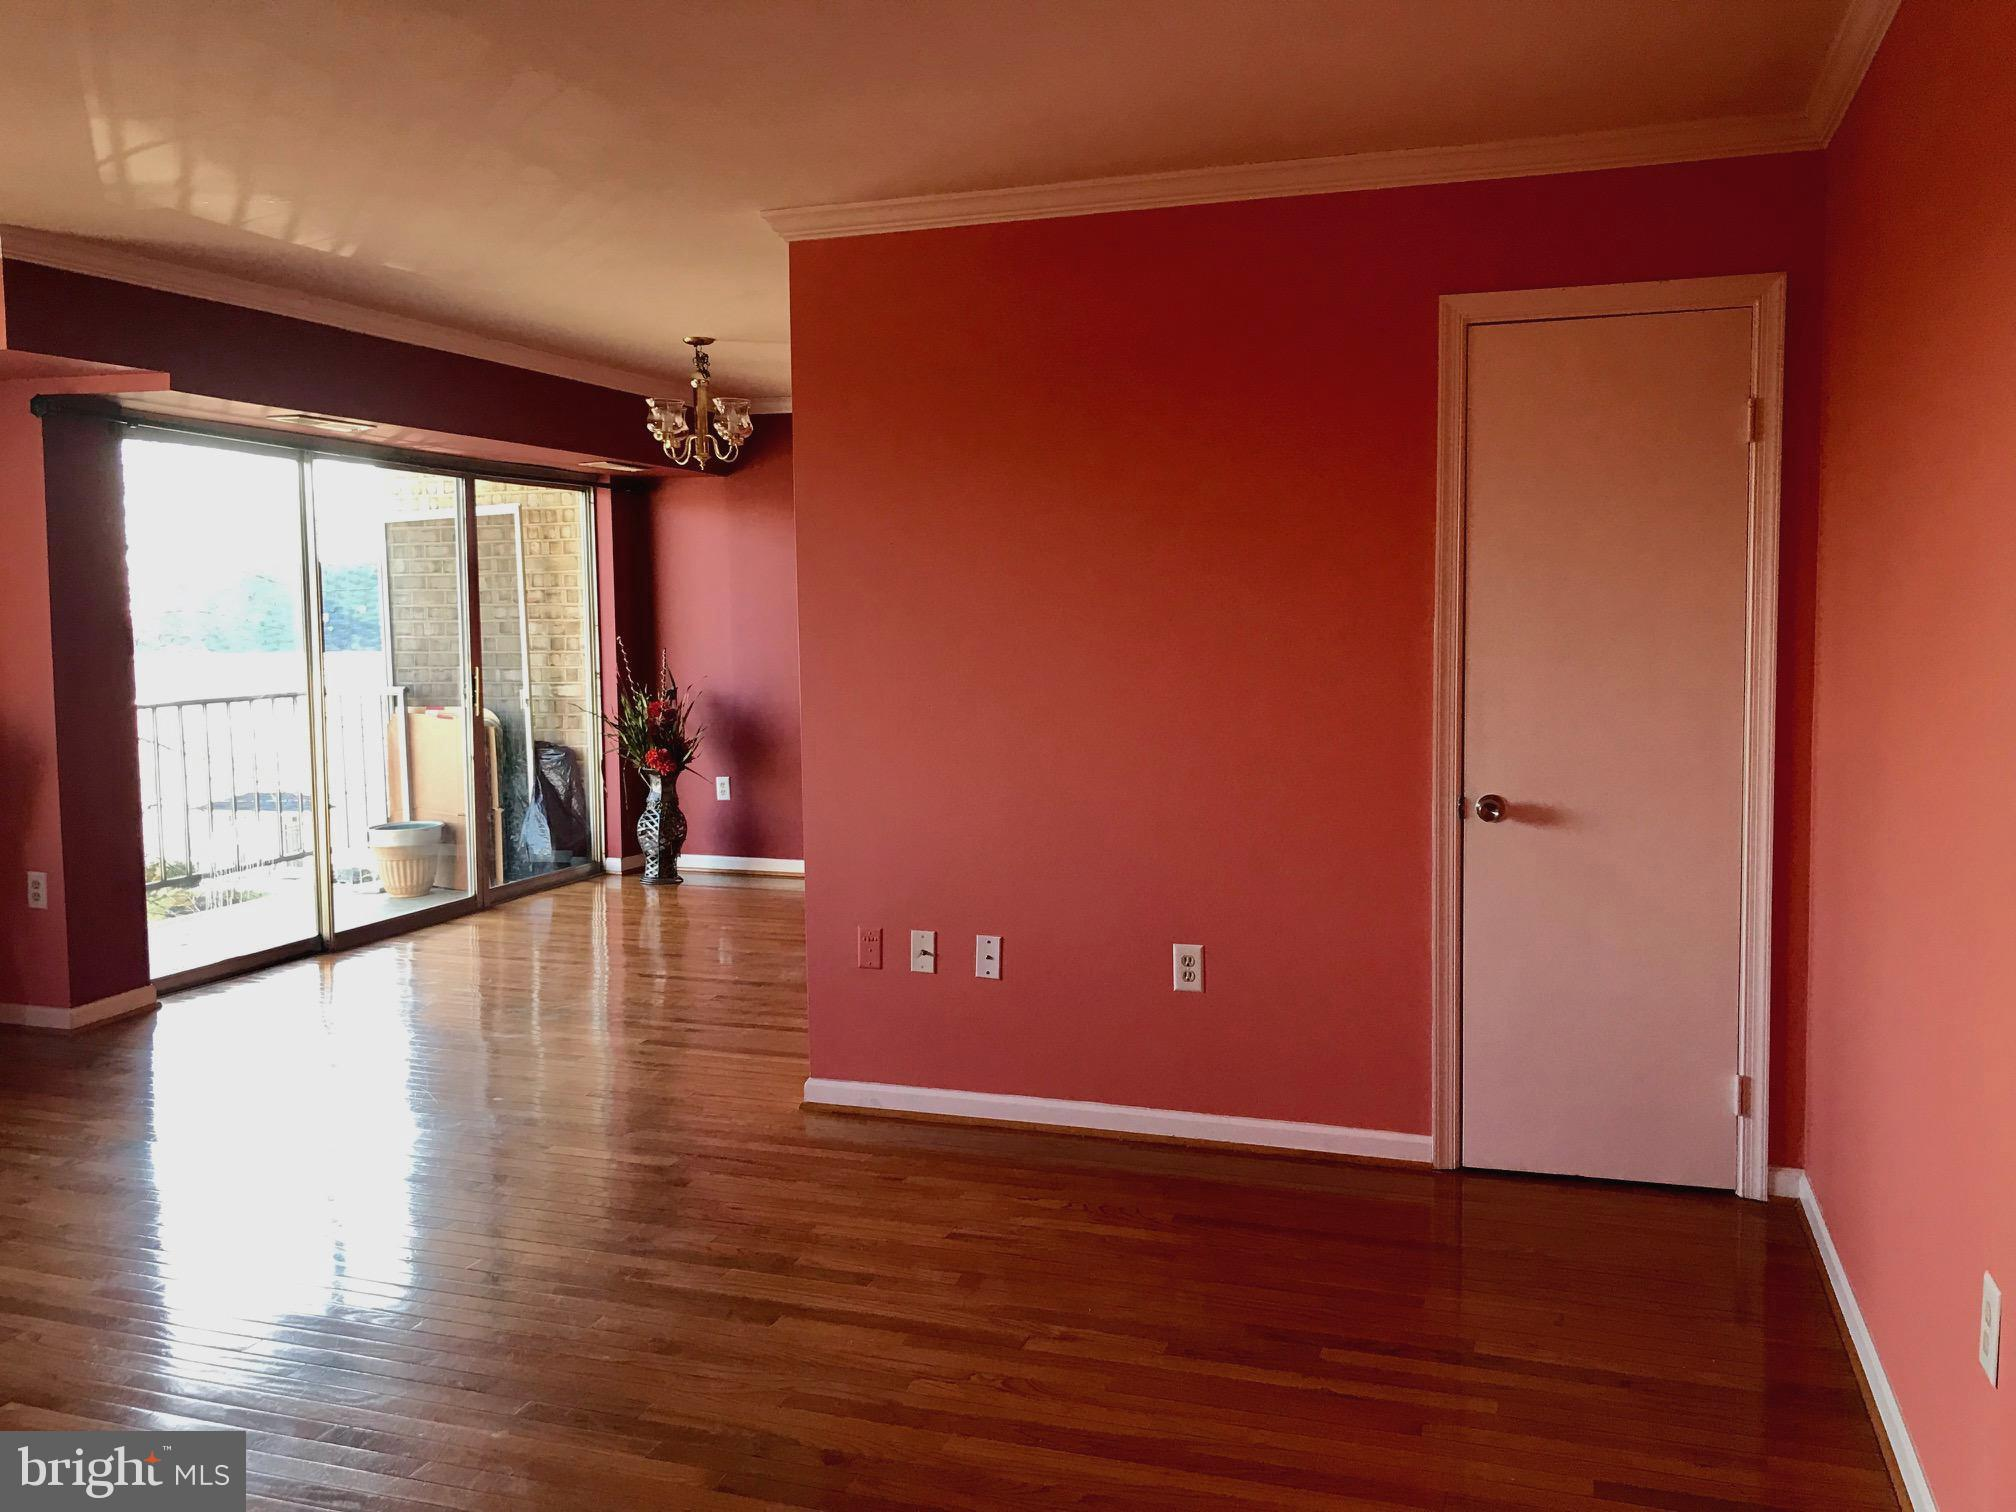 Perfect for the commute to DC, the Pentagon , Fort  Belvoir and Quantico.Close to I-95, Rt 1 and Rt 123. Two  Bedroom condo with den. Condo fee includes all utilities, basic cable and community pool. Ample parking. Laundry facilities in each bldg. Each unit has secured storage in basement.